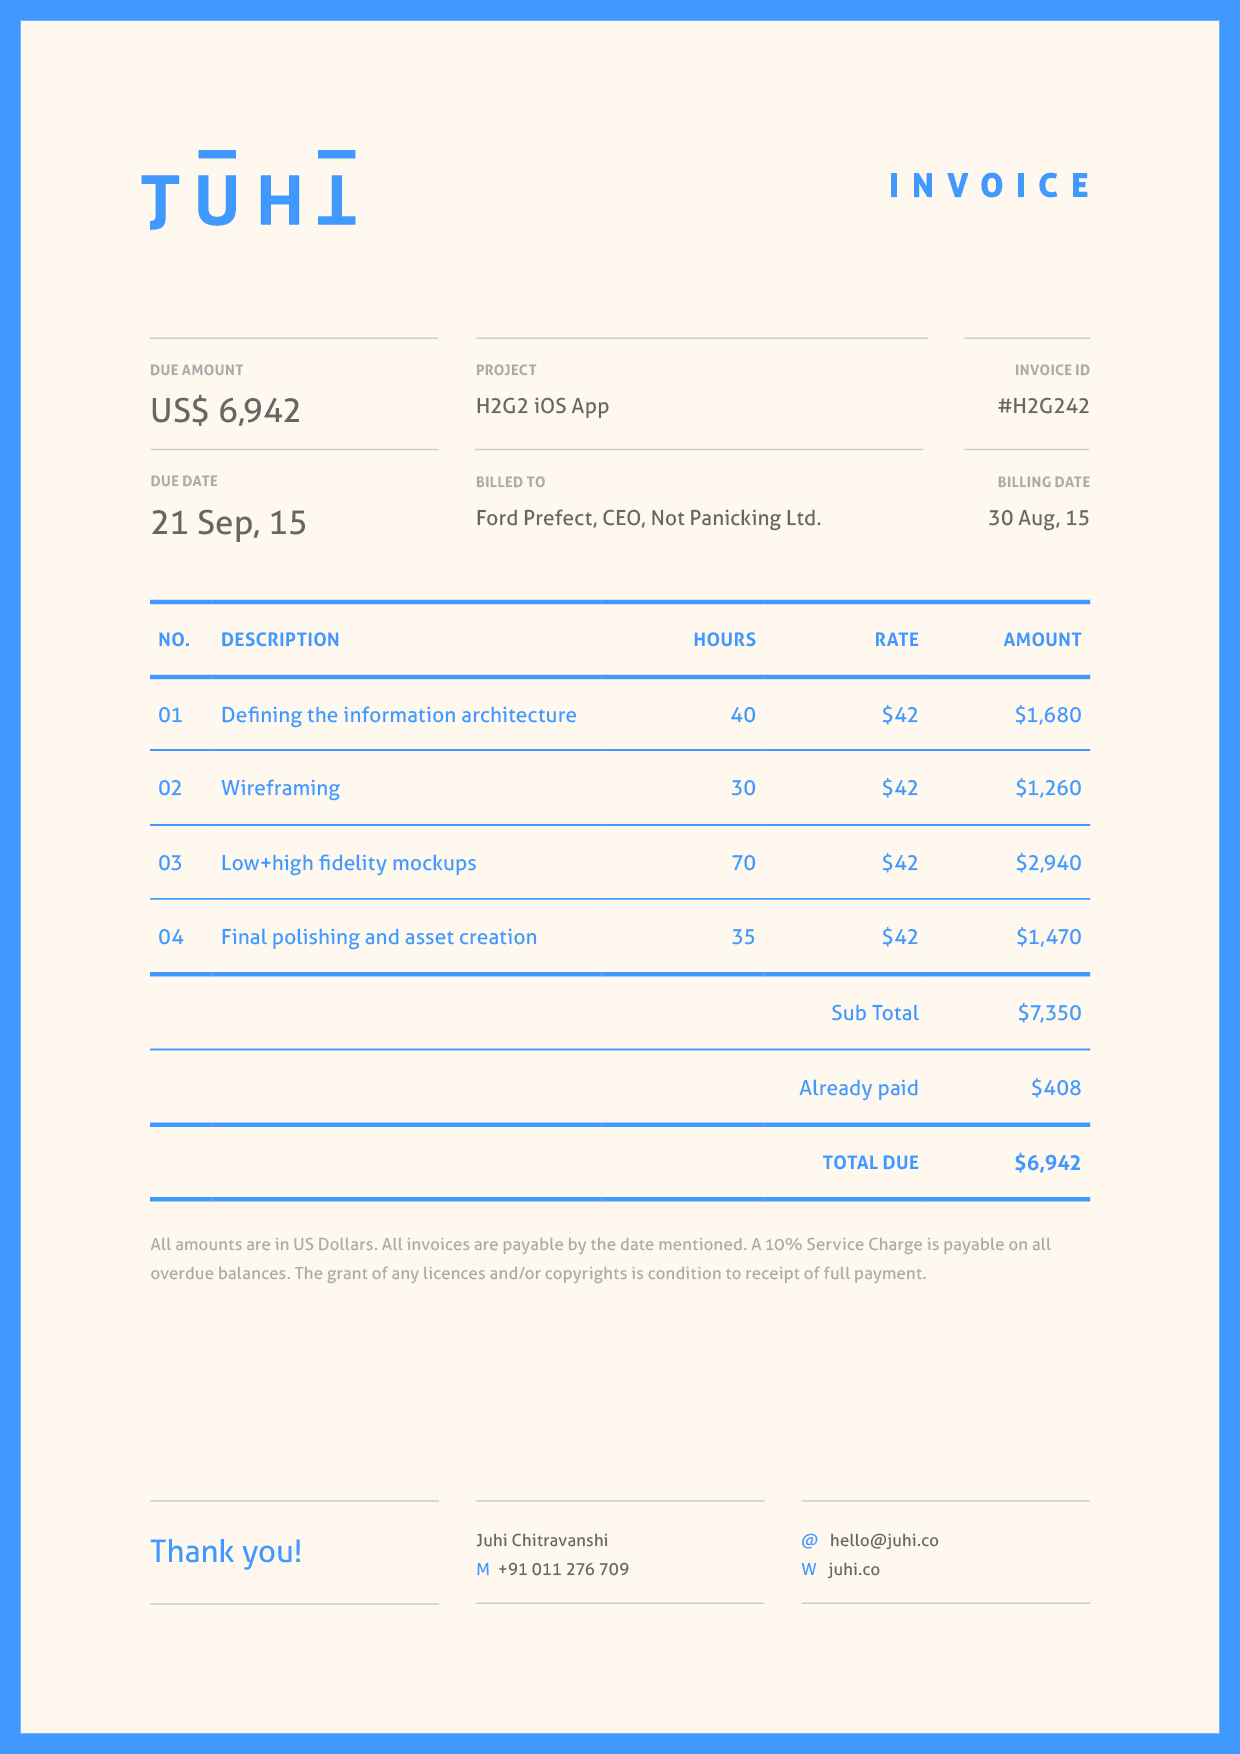 Usdgus  Fascinating Dont Hold Back On Your Invoice  Inspiring Designs  With Fascinating Invoice By Juhi Chitravanshi Follow With Enchanting Free Printable Receipt Forms Also Free Blank Receipt Template In Addition How To Do A Receipt And Child Support Receipt Form As Well As Lic Receipt Additionally Tax Receipts For Donations From Inspirationfeedcom With Usdgus  Fascinating Dont Hold Back On Your Invoice  Inspiring Designs  With Enchanting Invoice By Juhi Chitravanshi Follow And Fascinating Free Printable Receipt Forms Also Free Blank Receipt Template In Addition How To Do A Receipt From Inspirationfeedcom